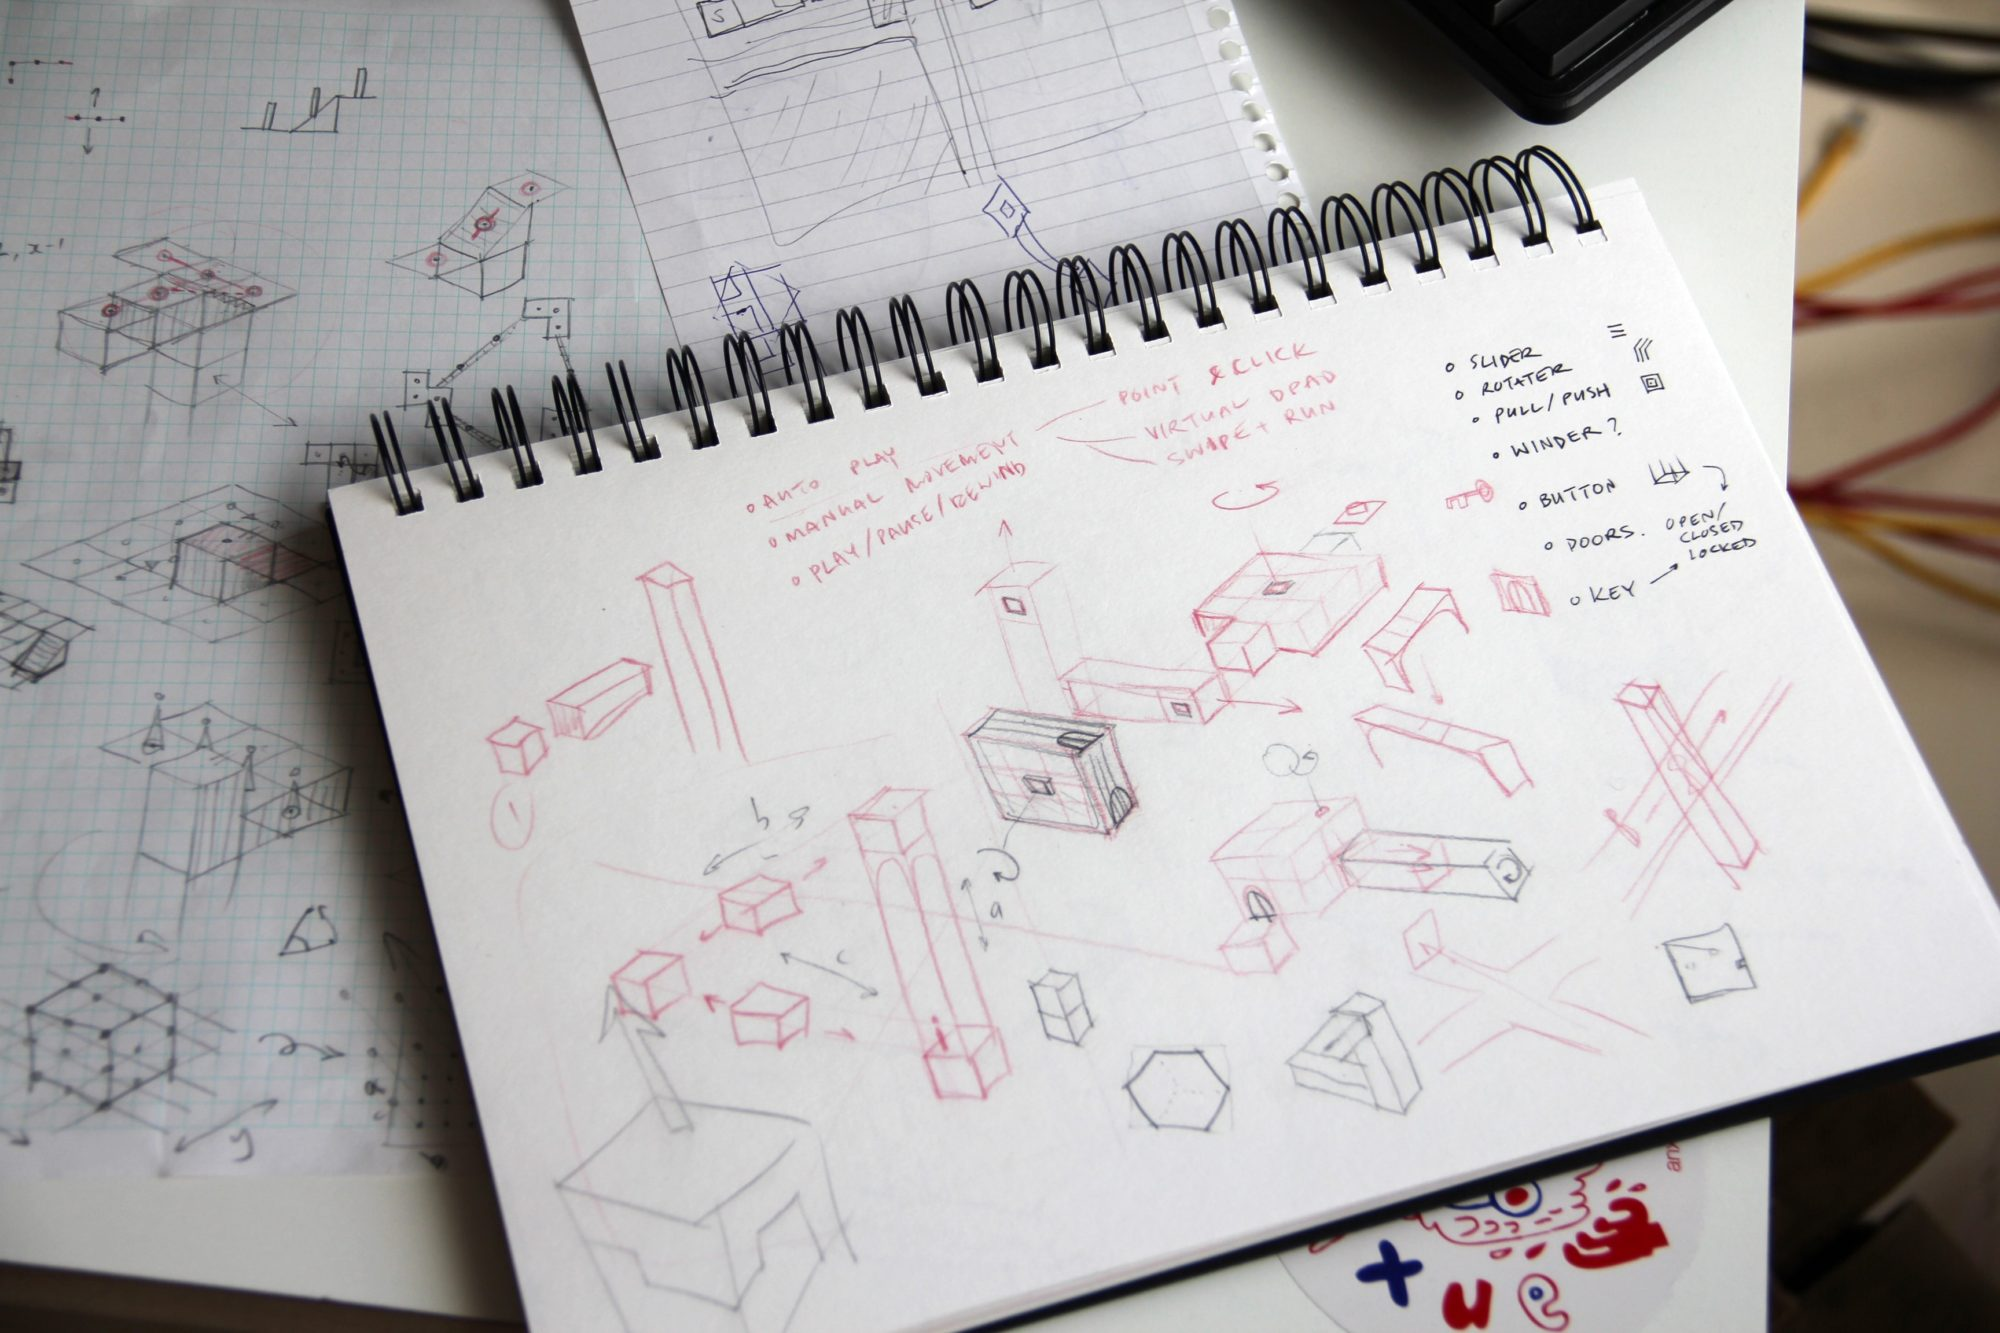 Sketches and notebooks from Ustwo games development team.